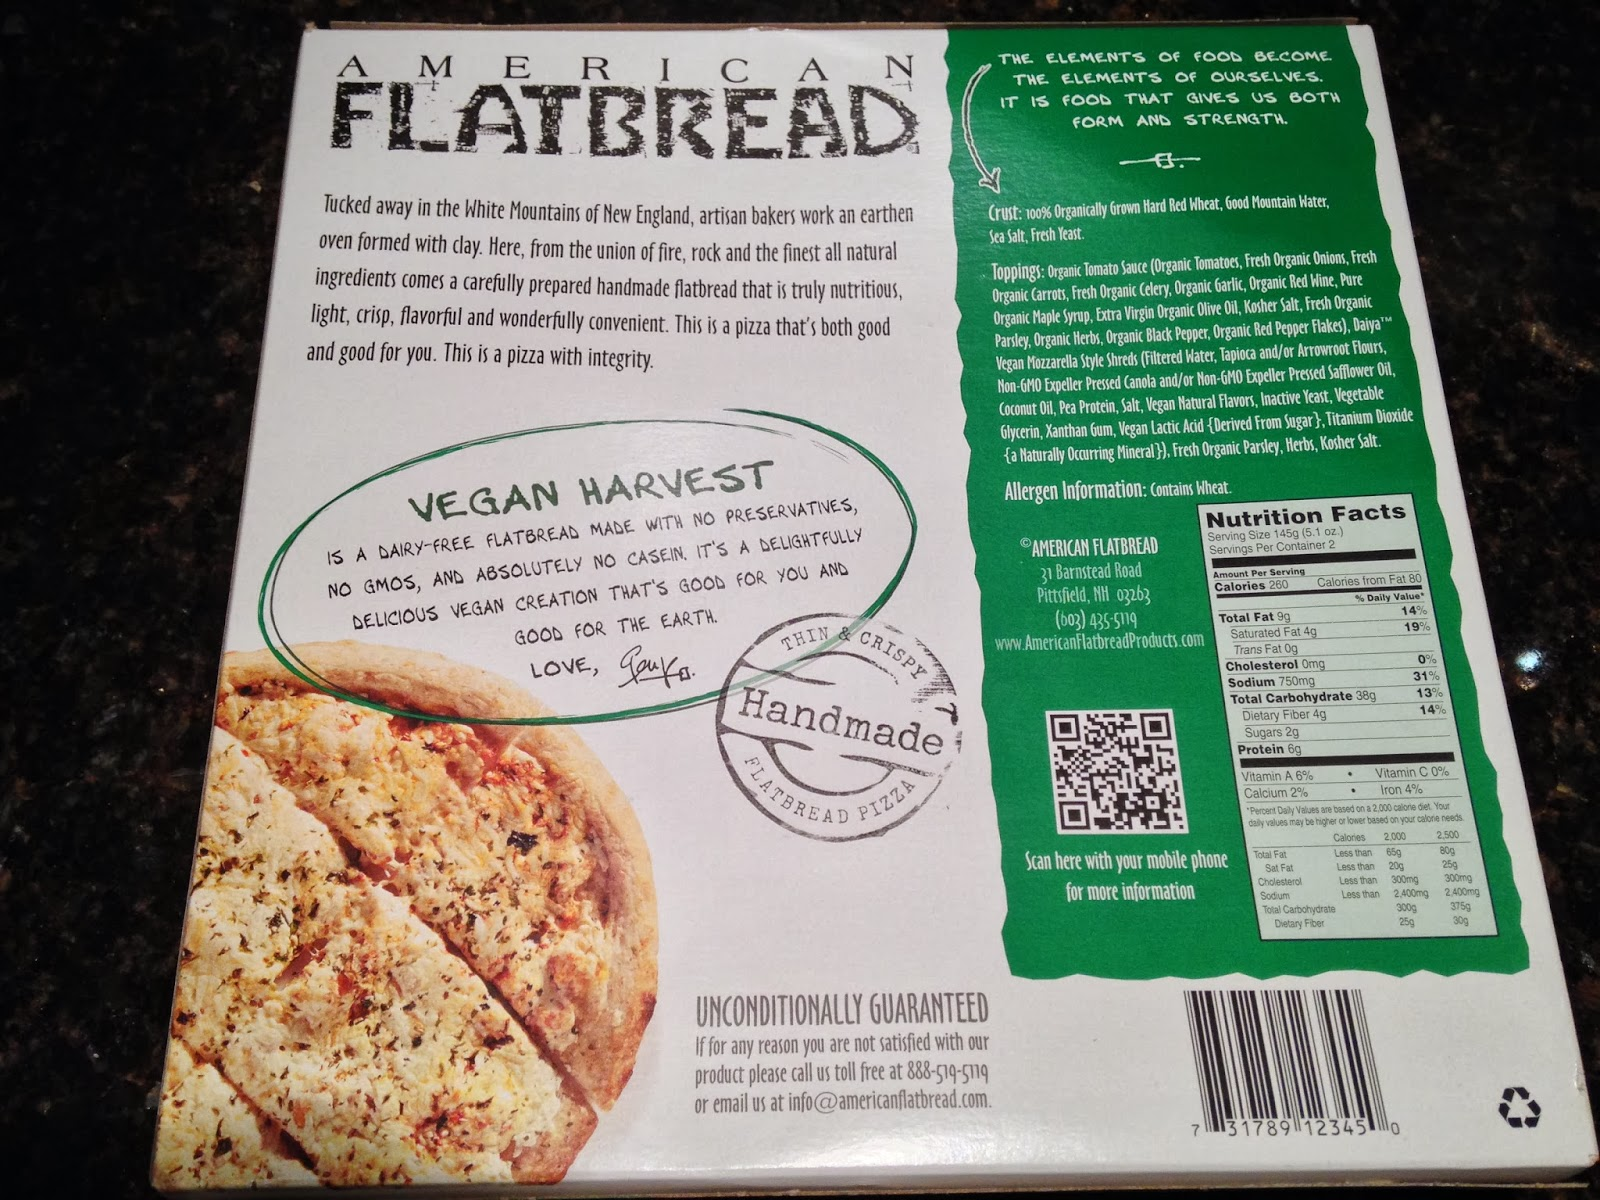 Vegocracy: Dining In - American Flatbread Vegan Harvest Pizza